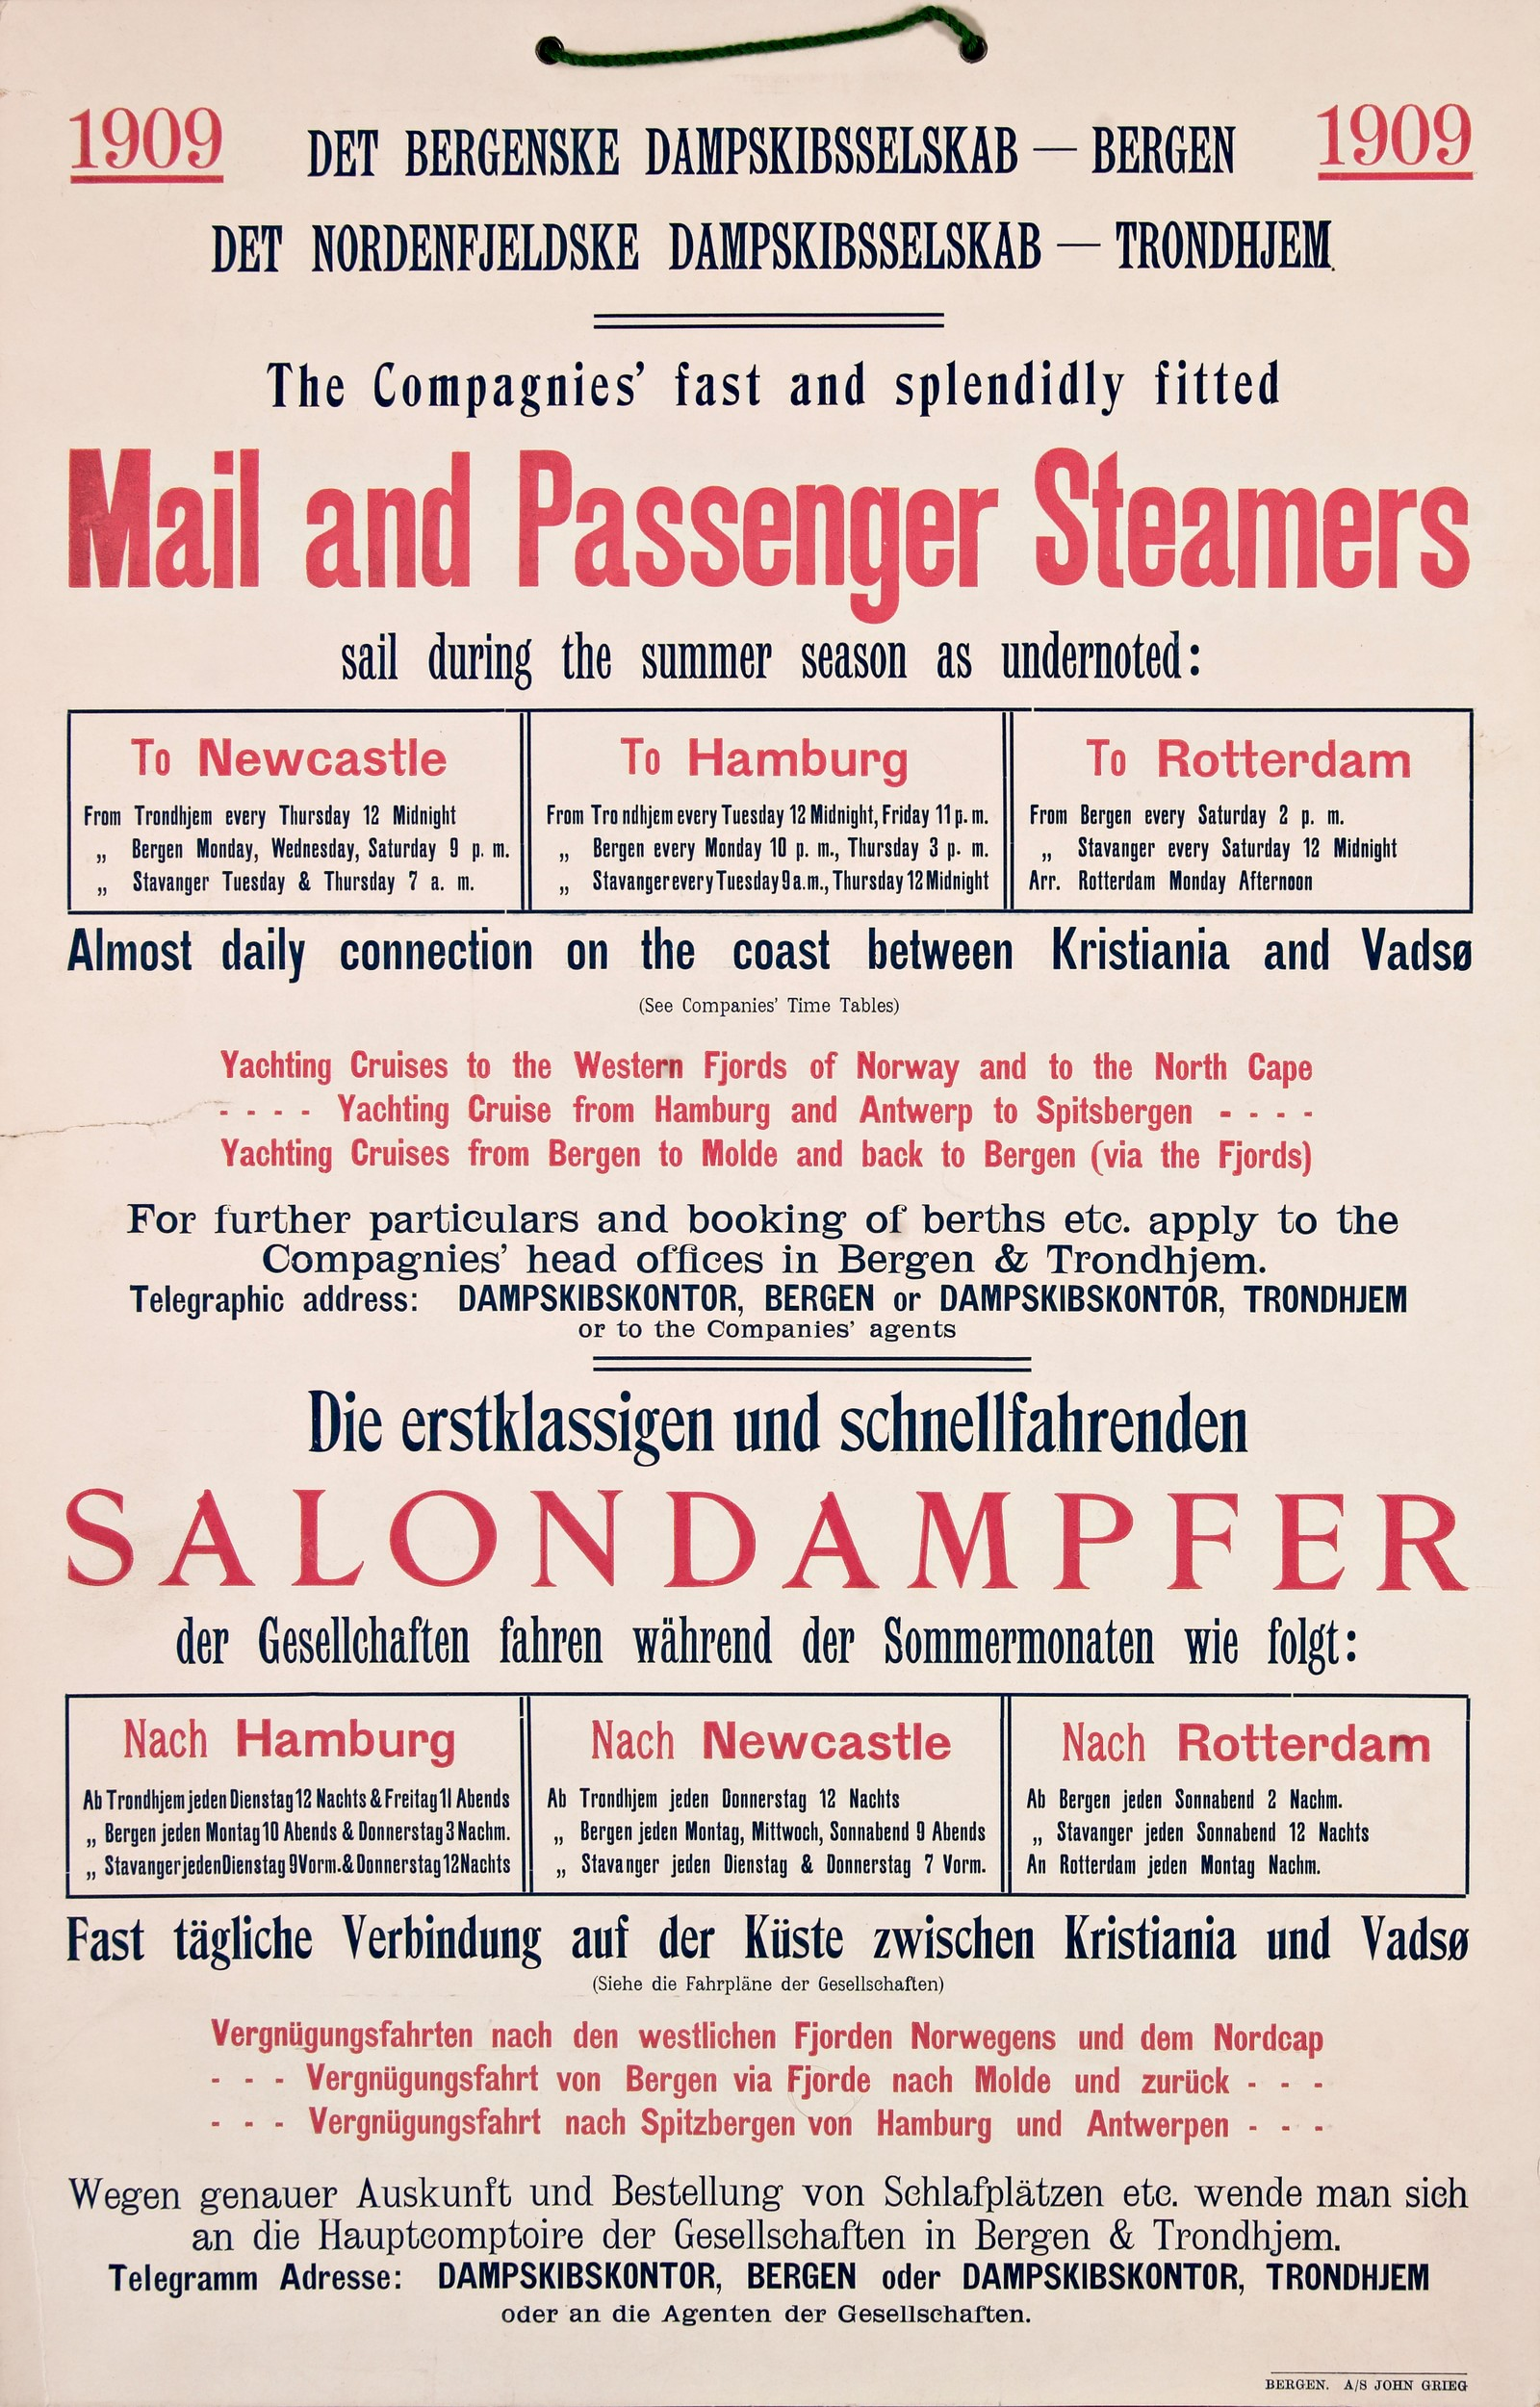 Mail and Passenger Steamers sail during the summer season as undernoted: to Newcastle, to Hamburg, to Rotterdam. Saklig og informativ plakat fra 1909.